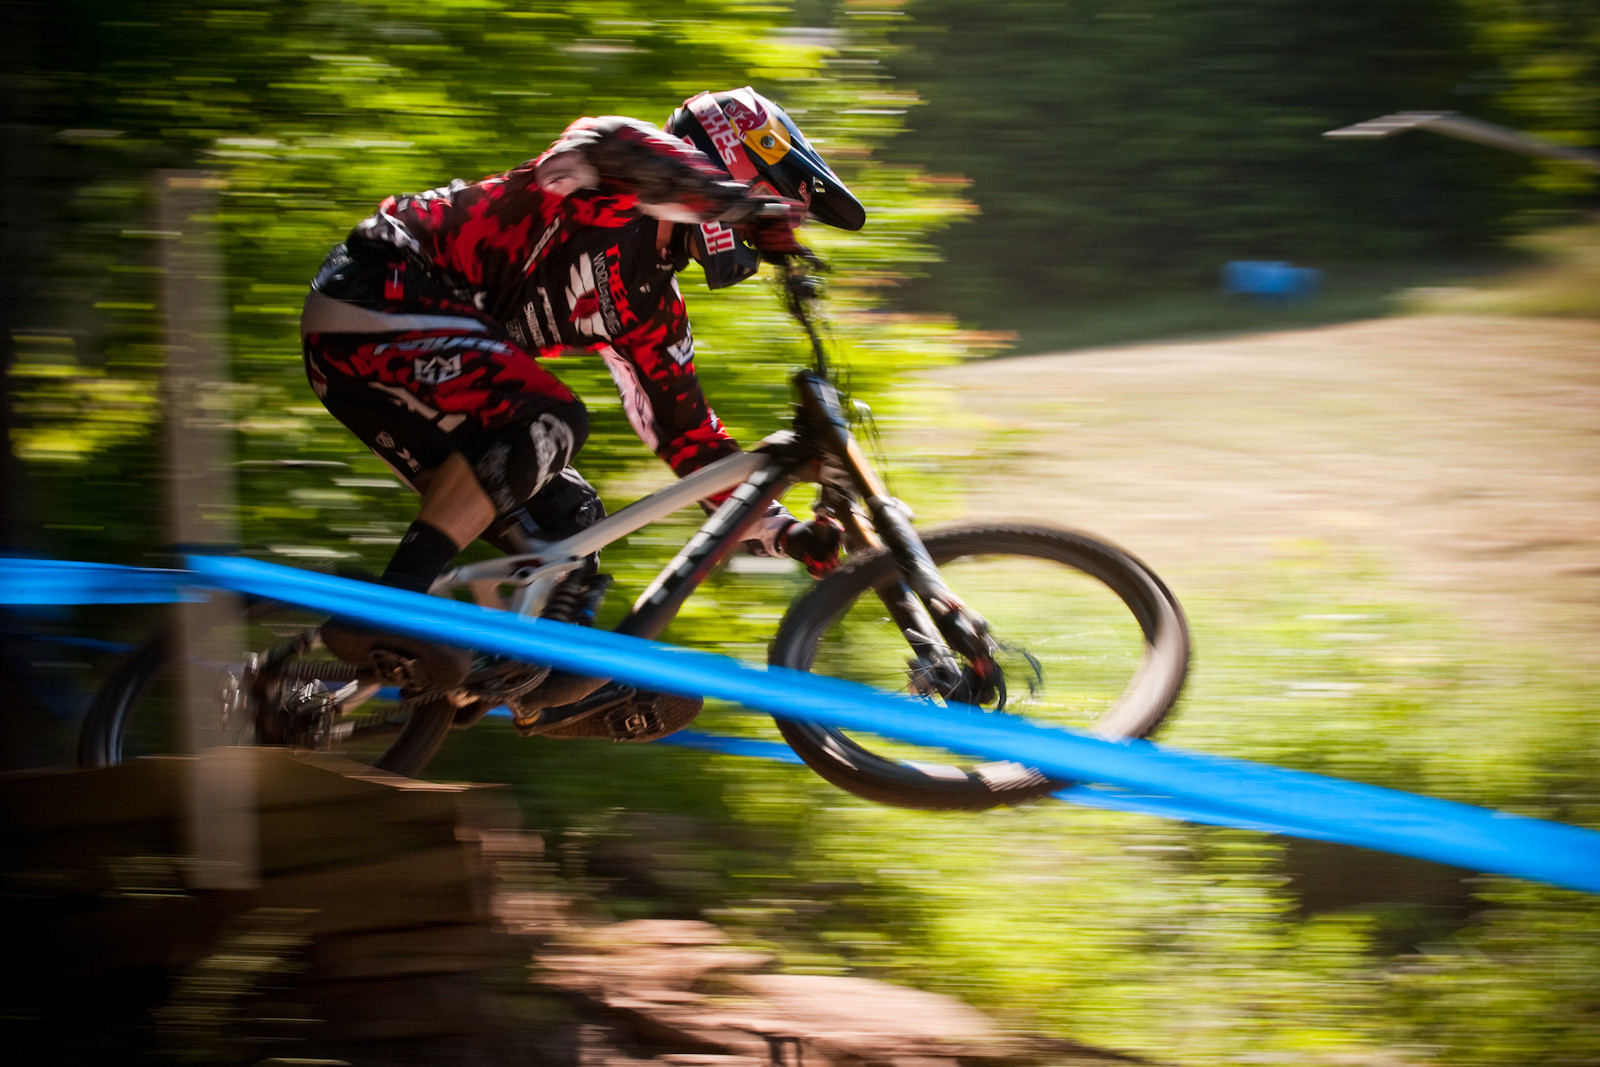 Aaron Gwin, Will He Win the Windham World Cup Again? - 2012 UCI World Cup, Windham, New York Day 2 - Mountain Biking Pictures - Vital MTB